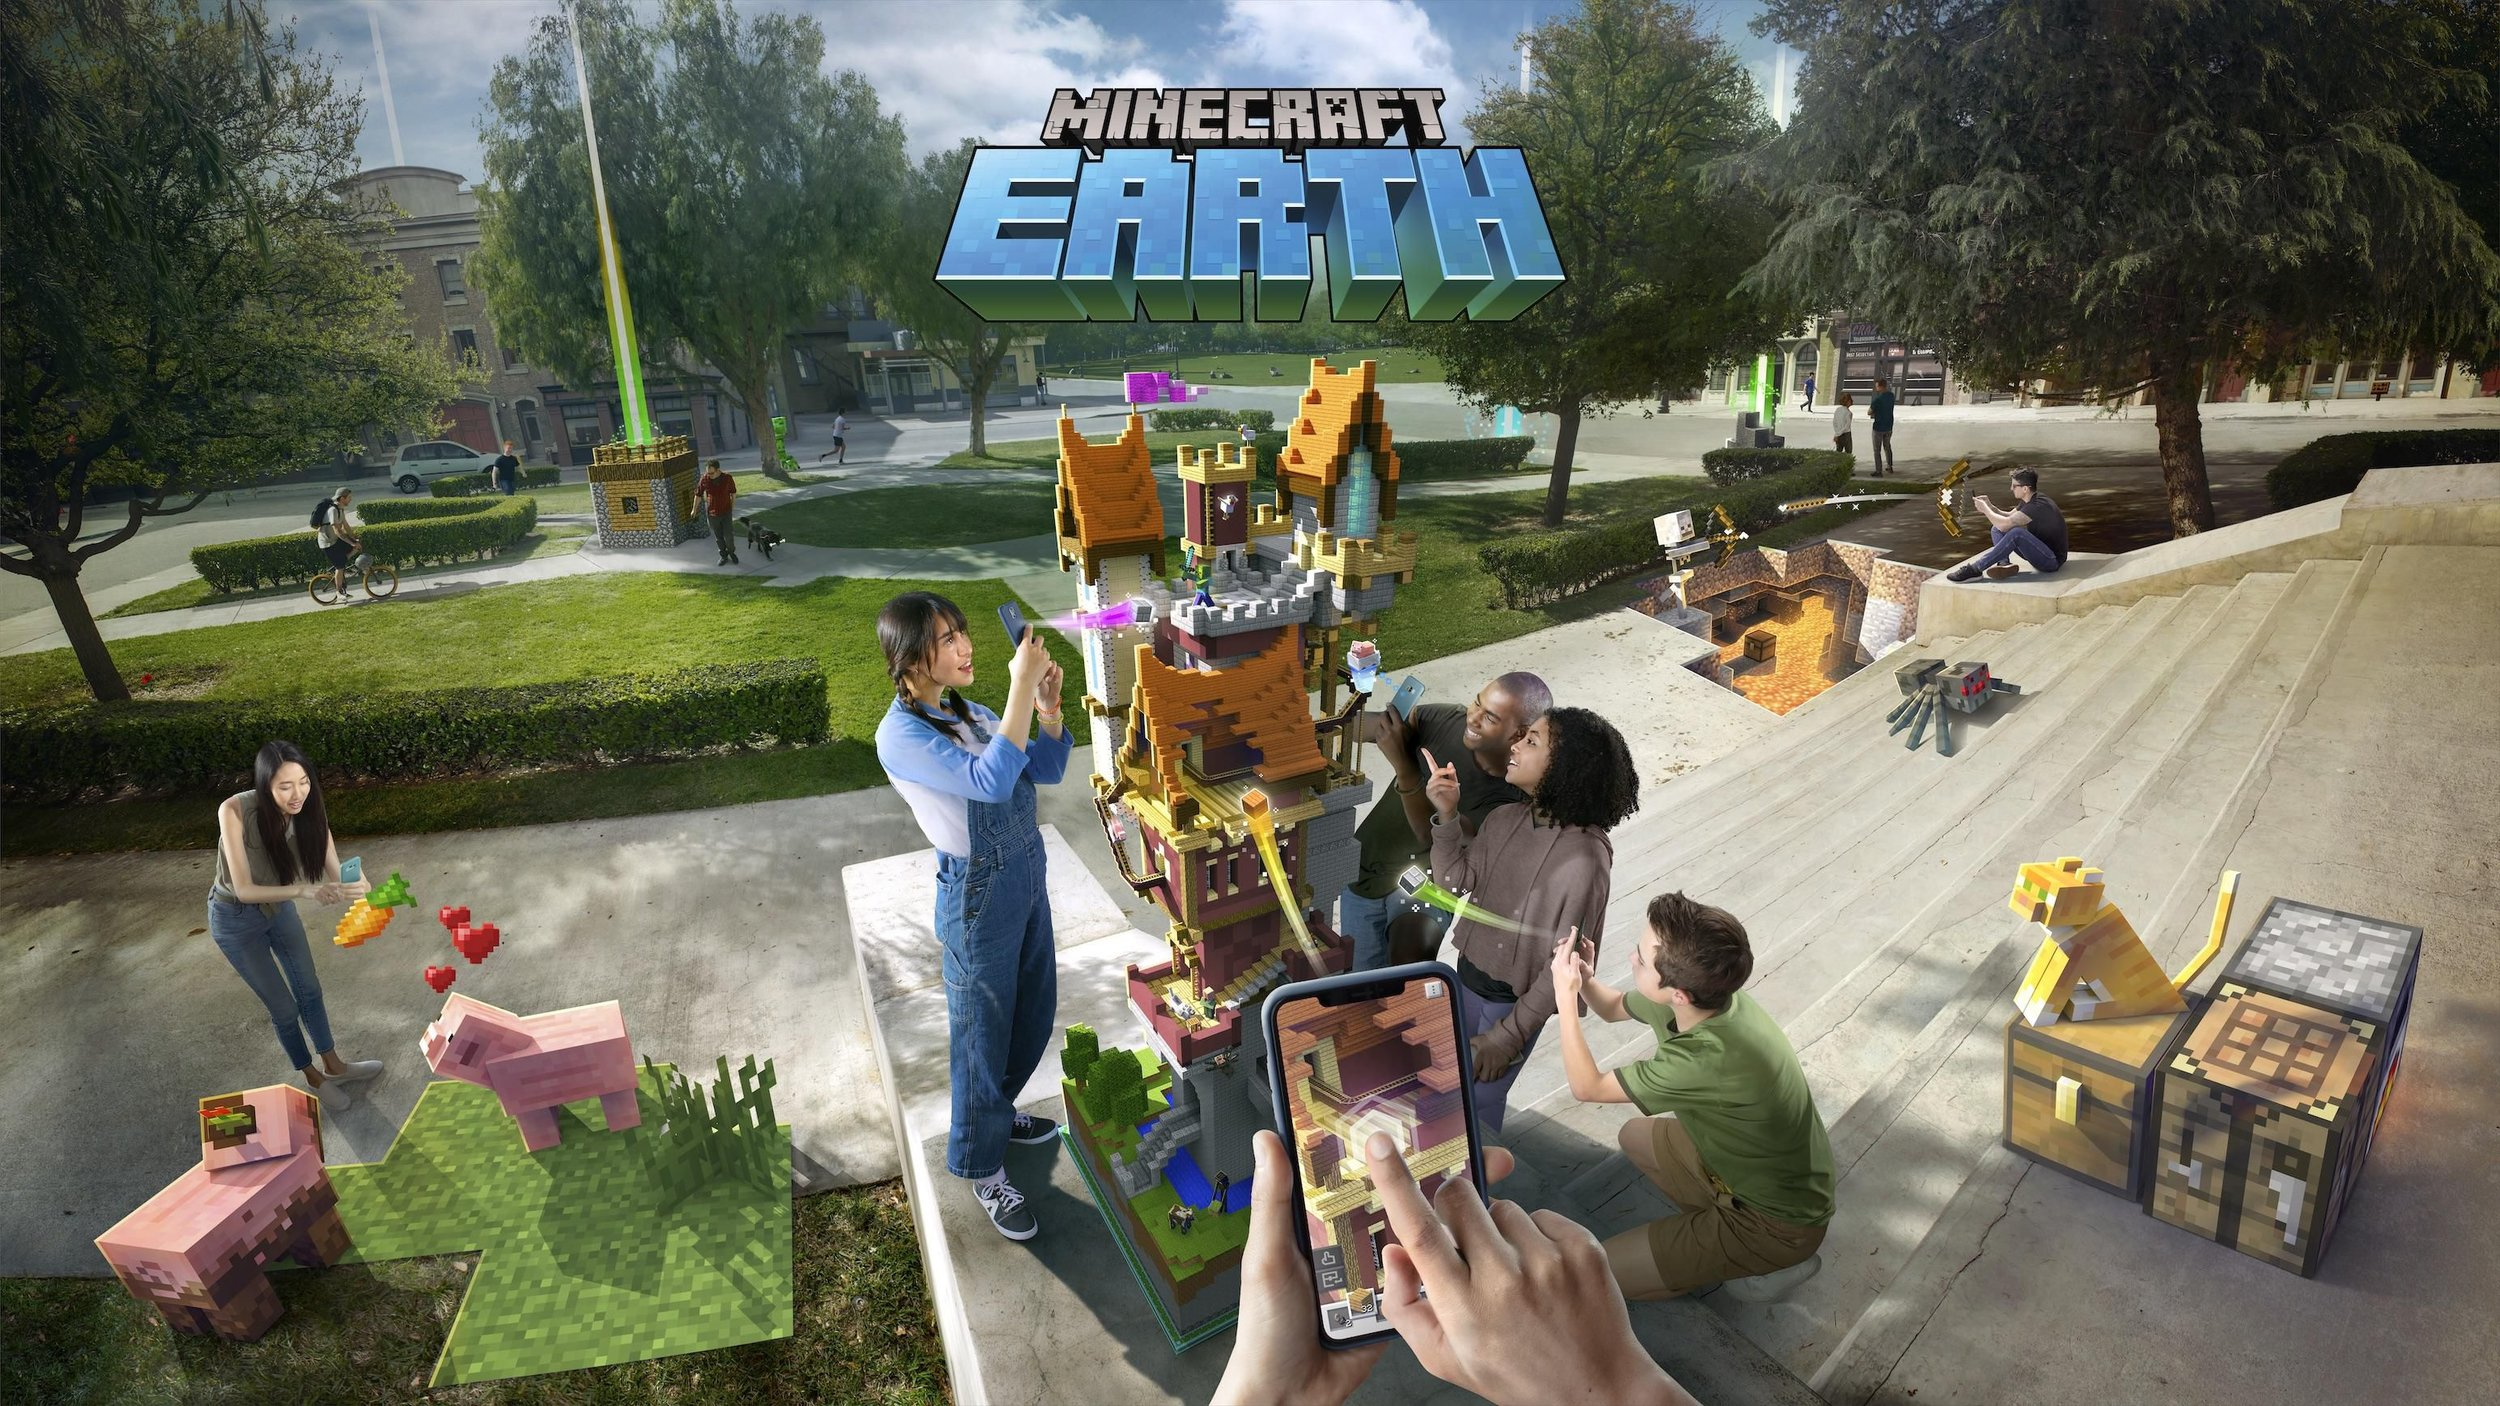 MINECRAFT EARTH - MicrosoftView this project >